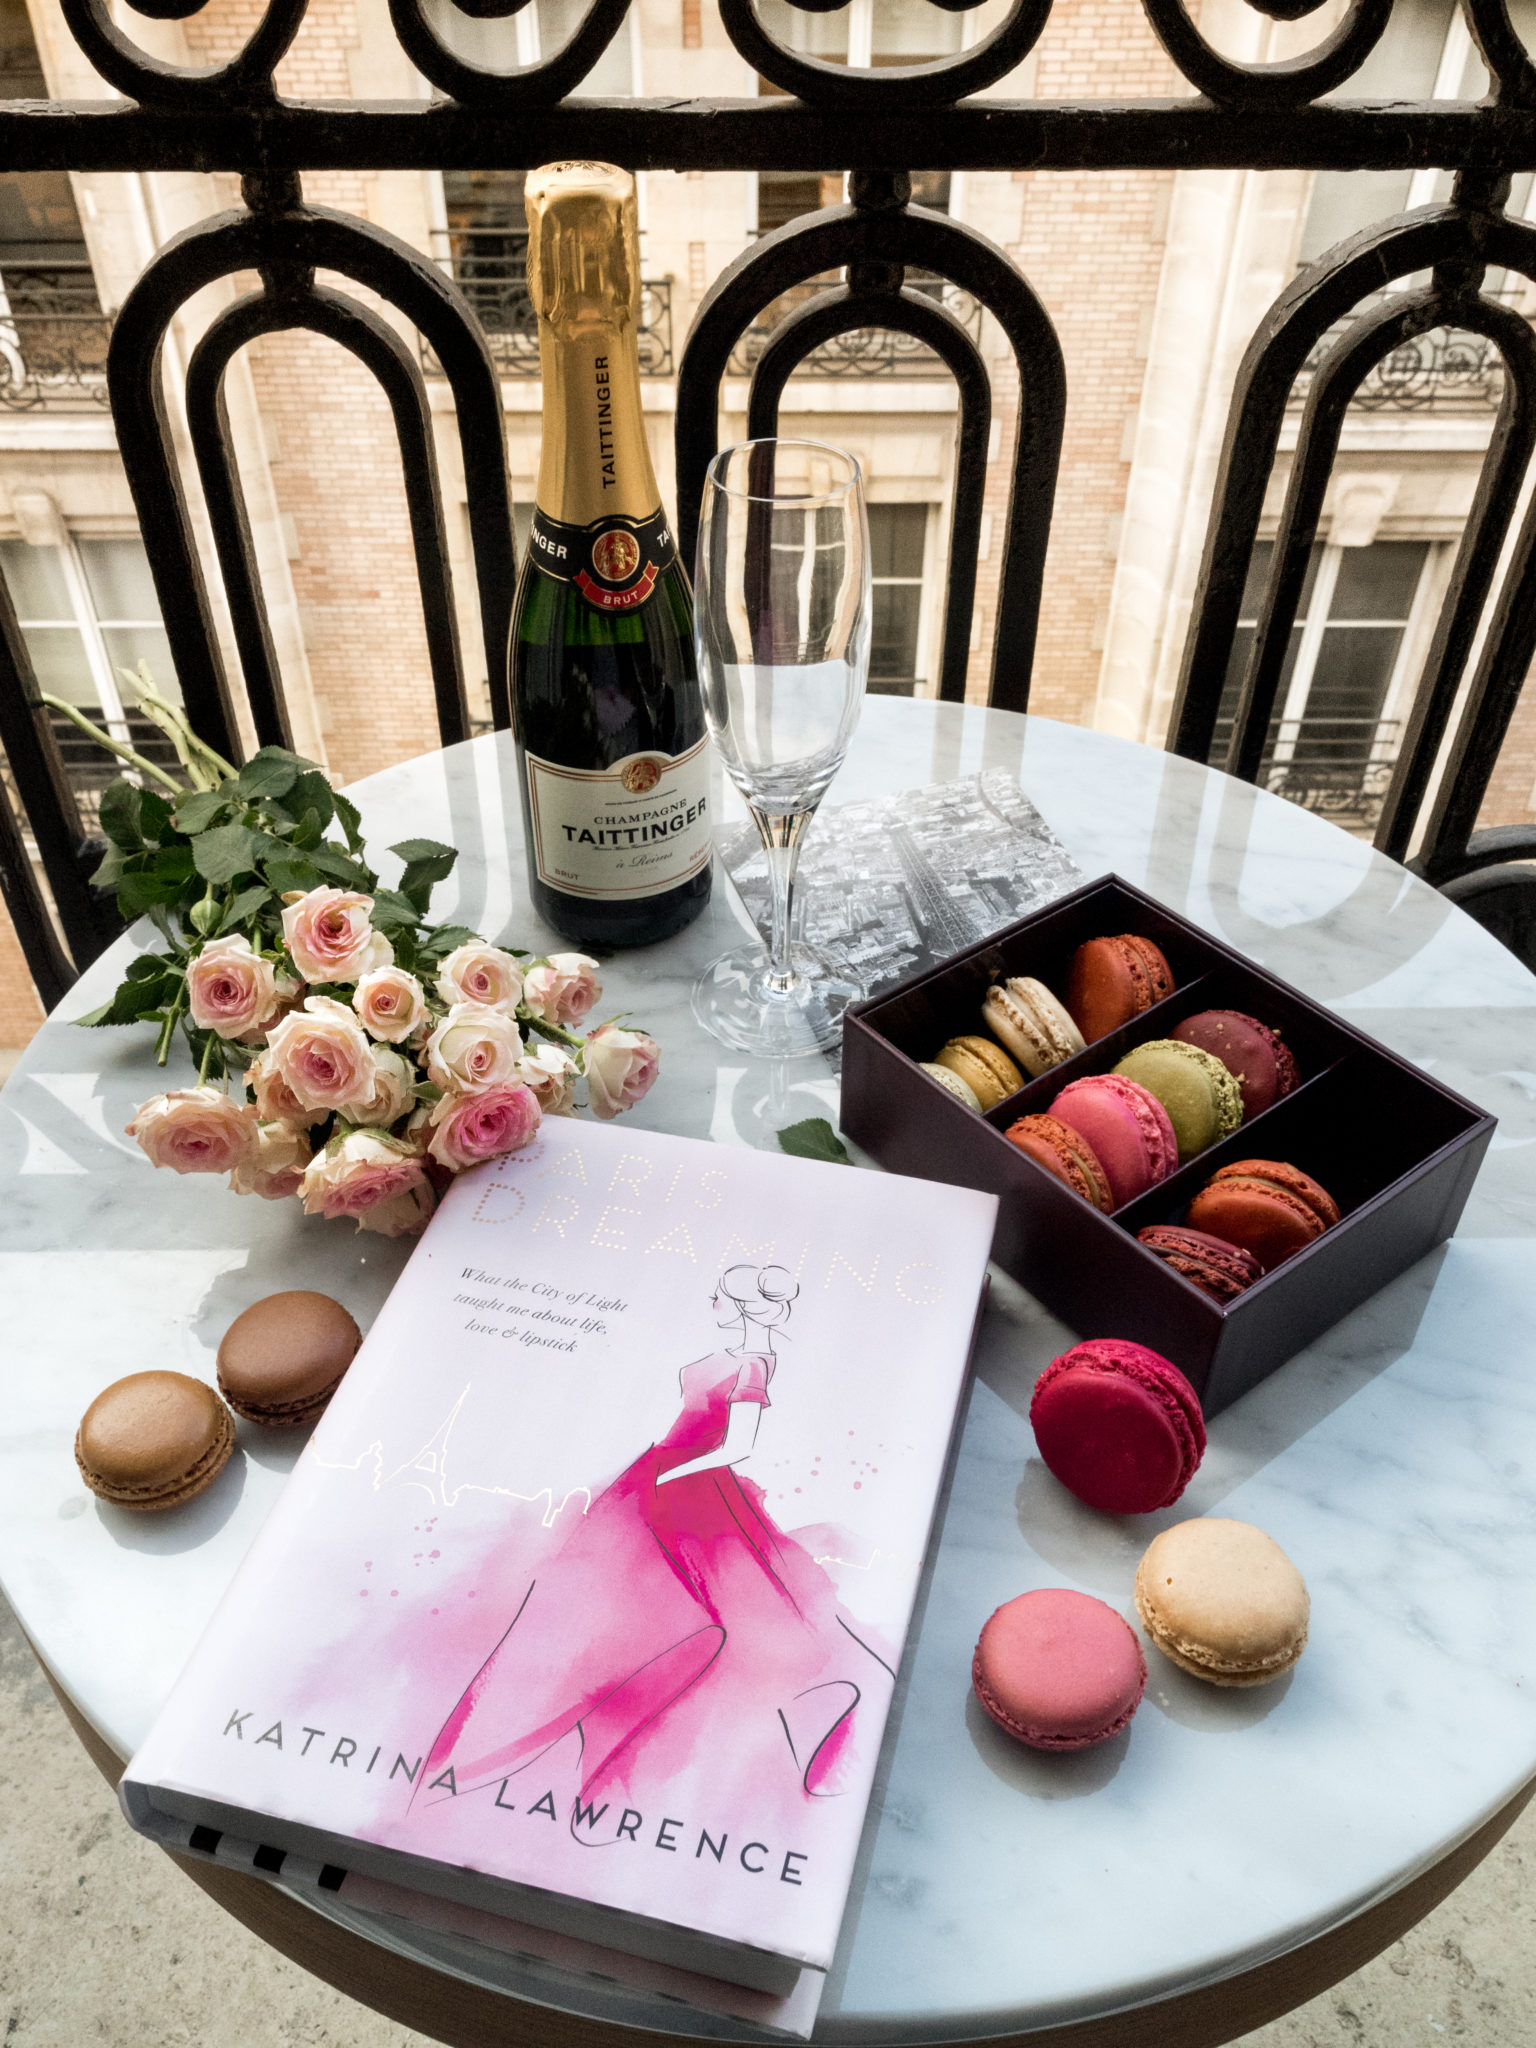 Paris Giveaway: We're giving away FIVE copies of the latest Paris Memoir and YSL Lipsticks!